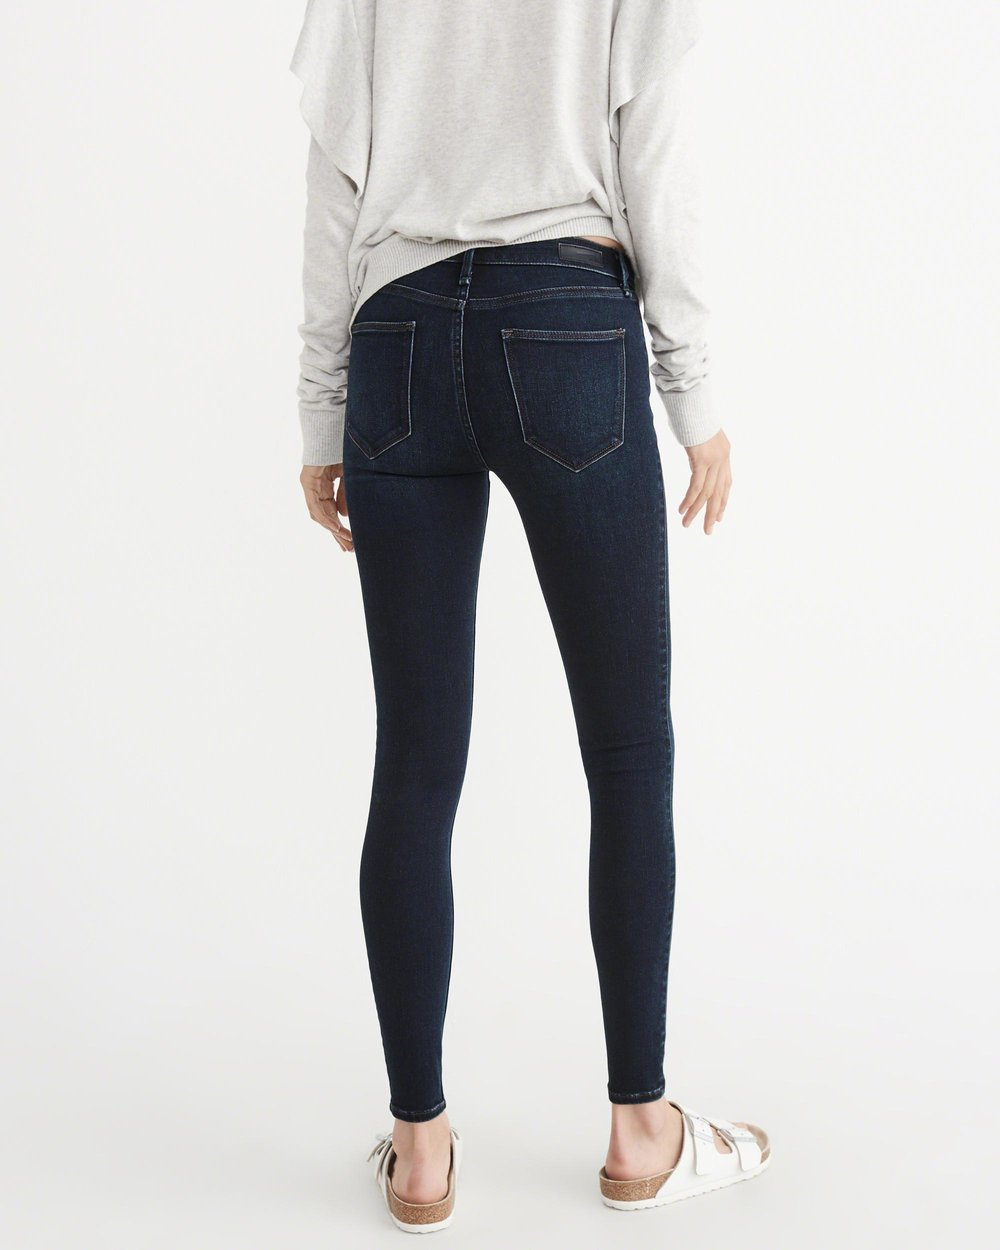 Low Rise Jean Leggings - I literally have these in every single color available. They are so comfortable! The white and black ones don't even look like jeans. So much so that I dress them up with heels and a cardigan or blazer and wear them to the office! Total closet staple.